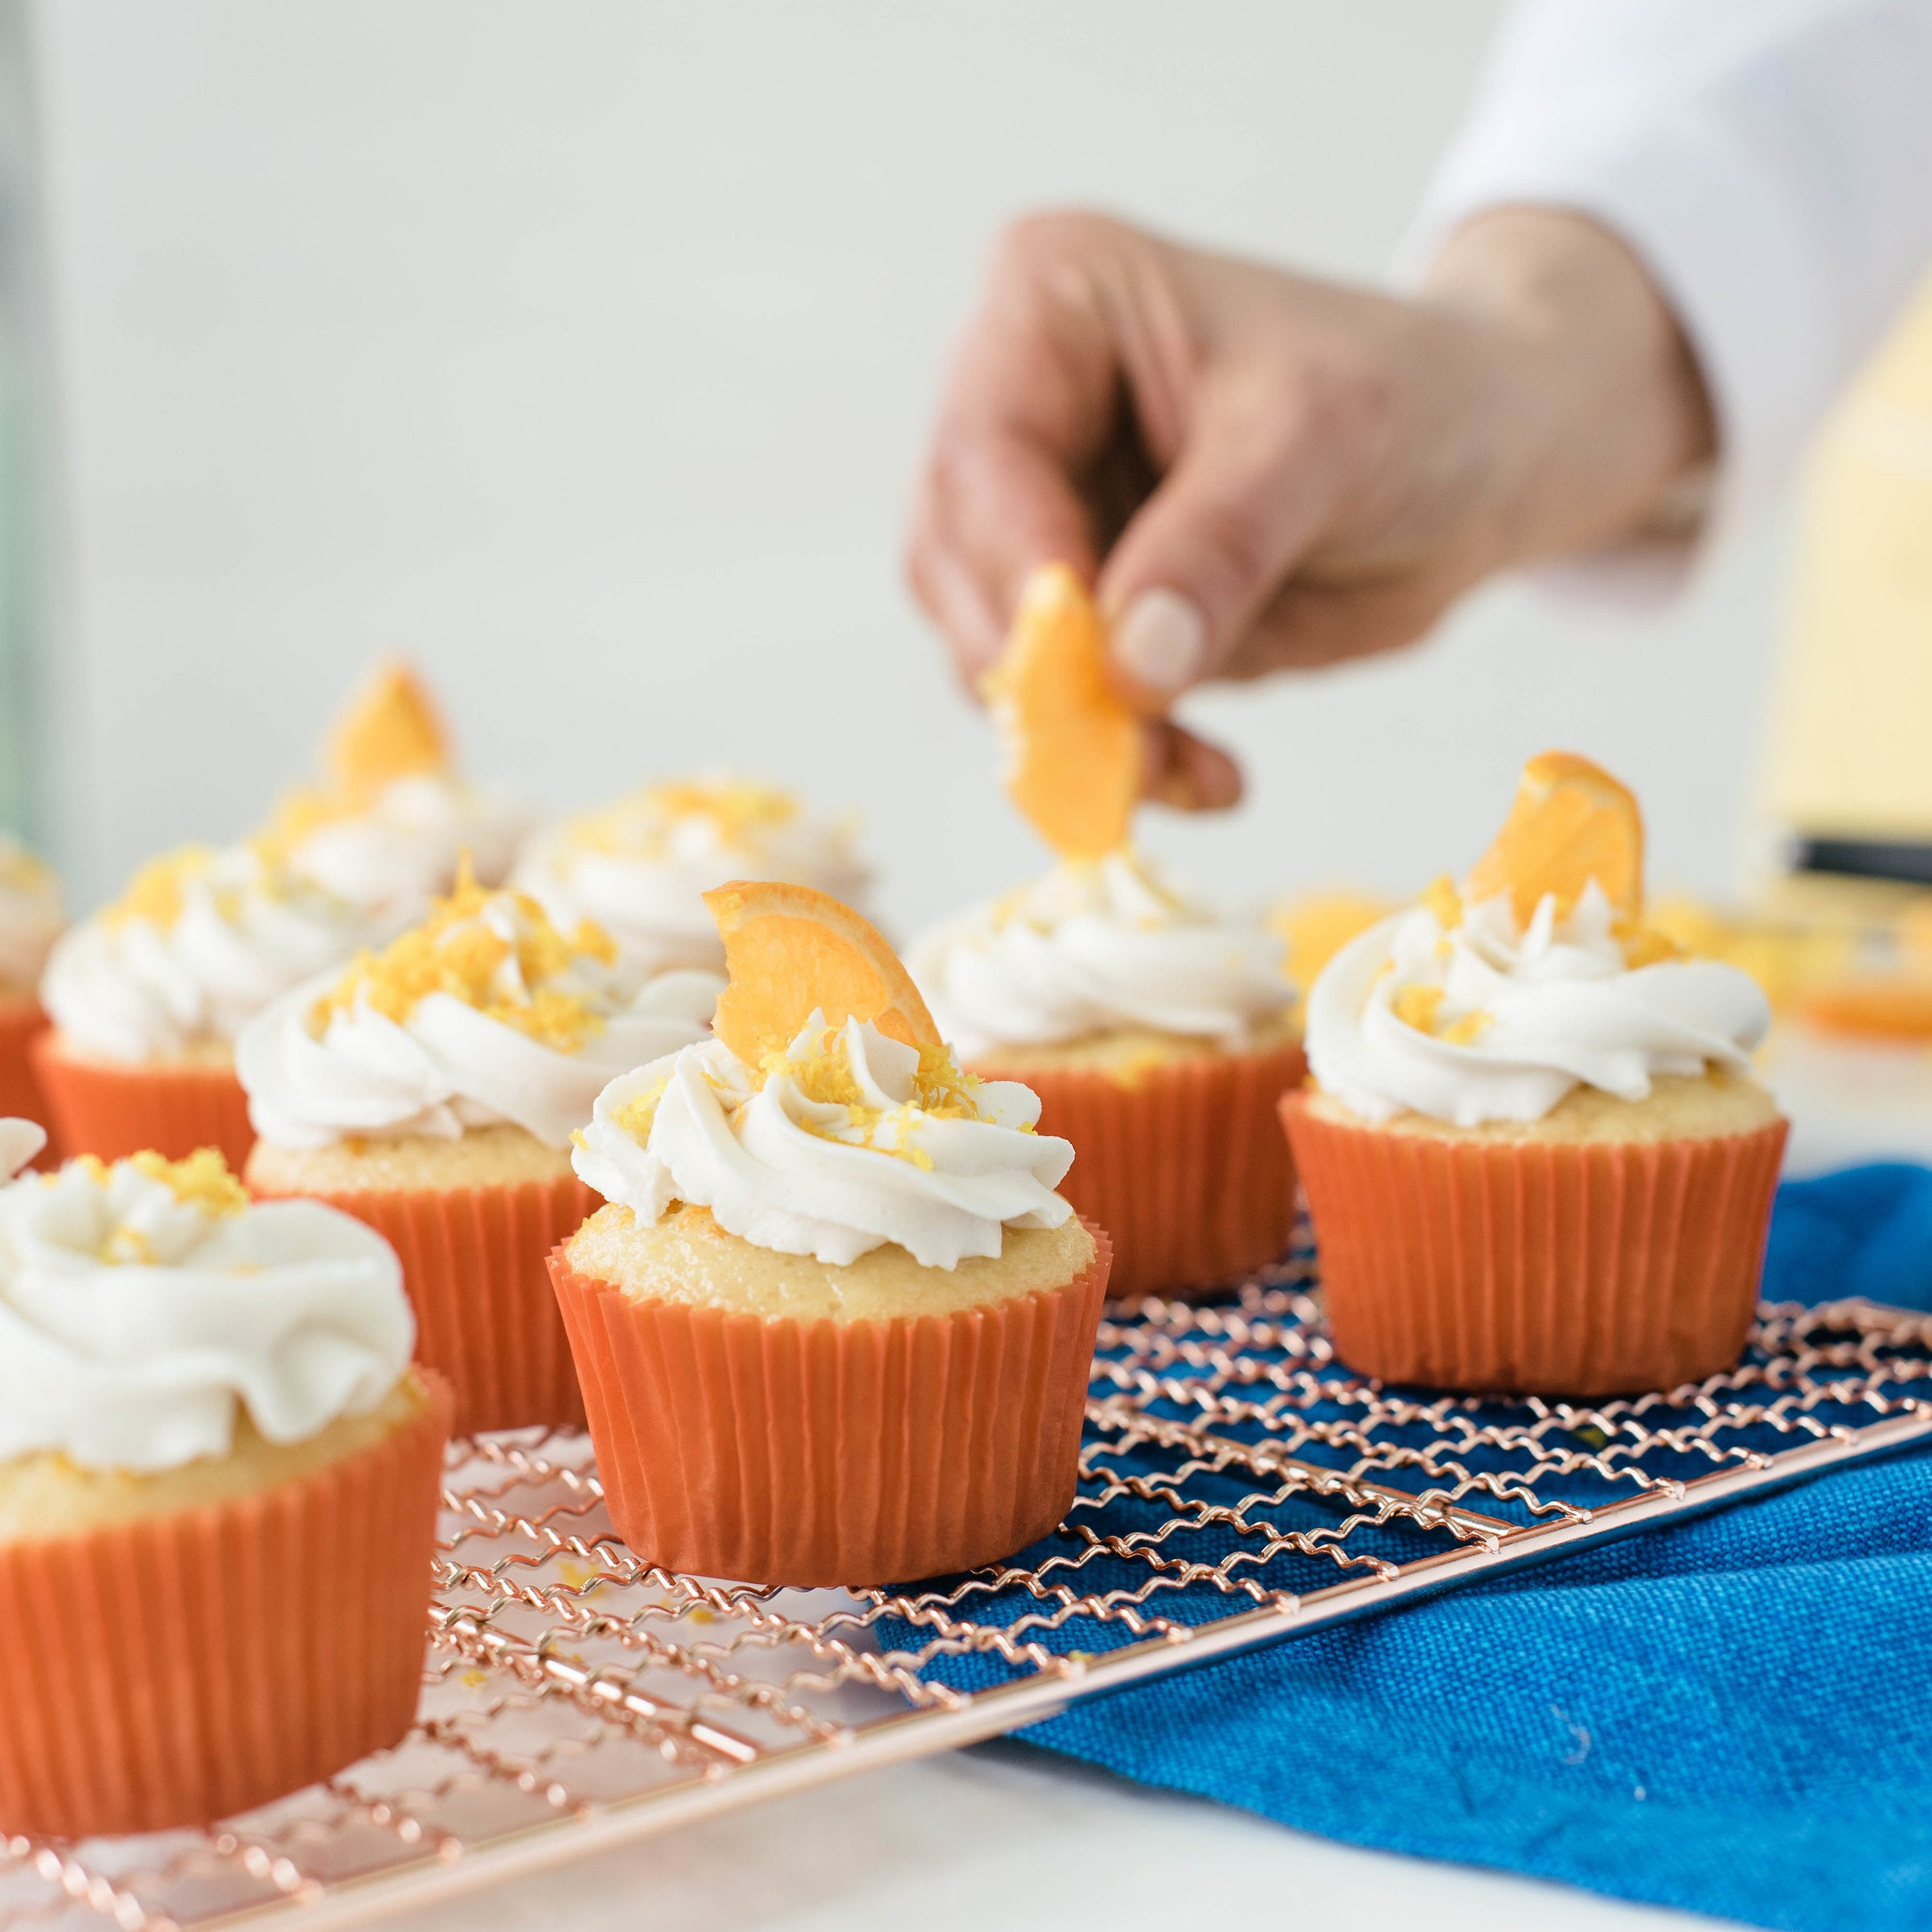 Image from the side of a hand putting orange slices on Miss Jones Baking Co Mimosa Cupcakes on a baking rack